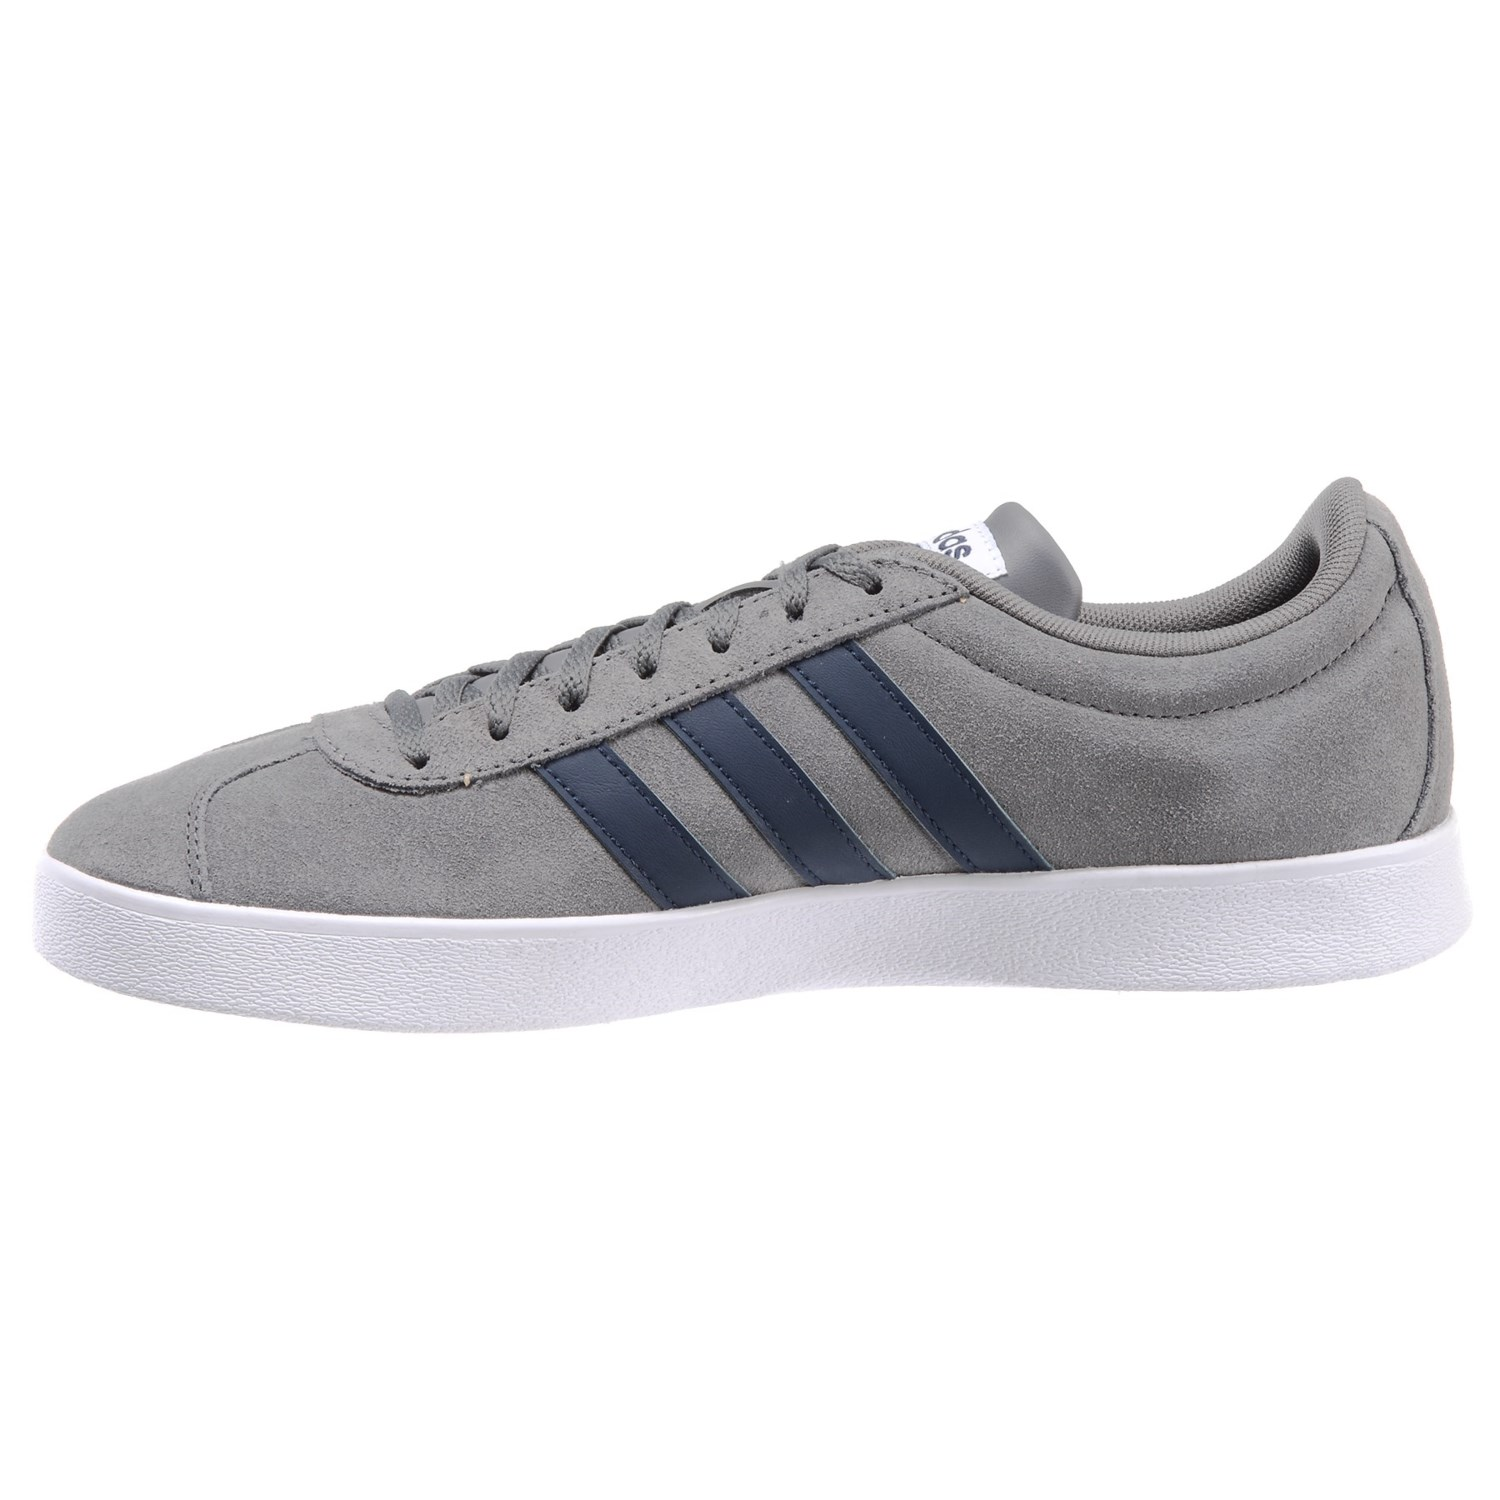 adidas vl court suede mens trainers